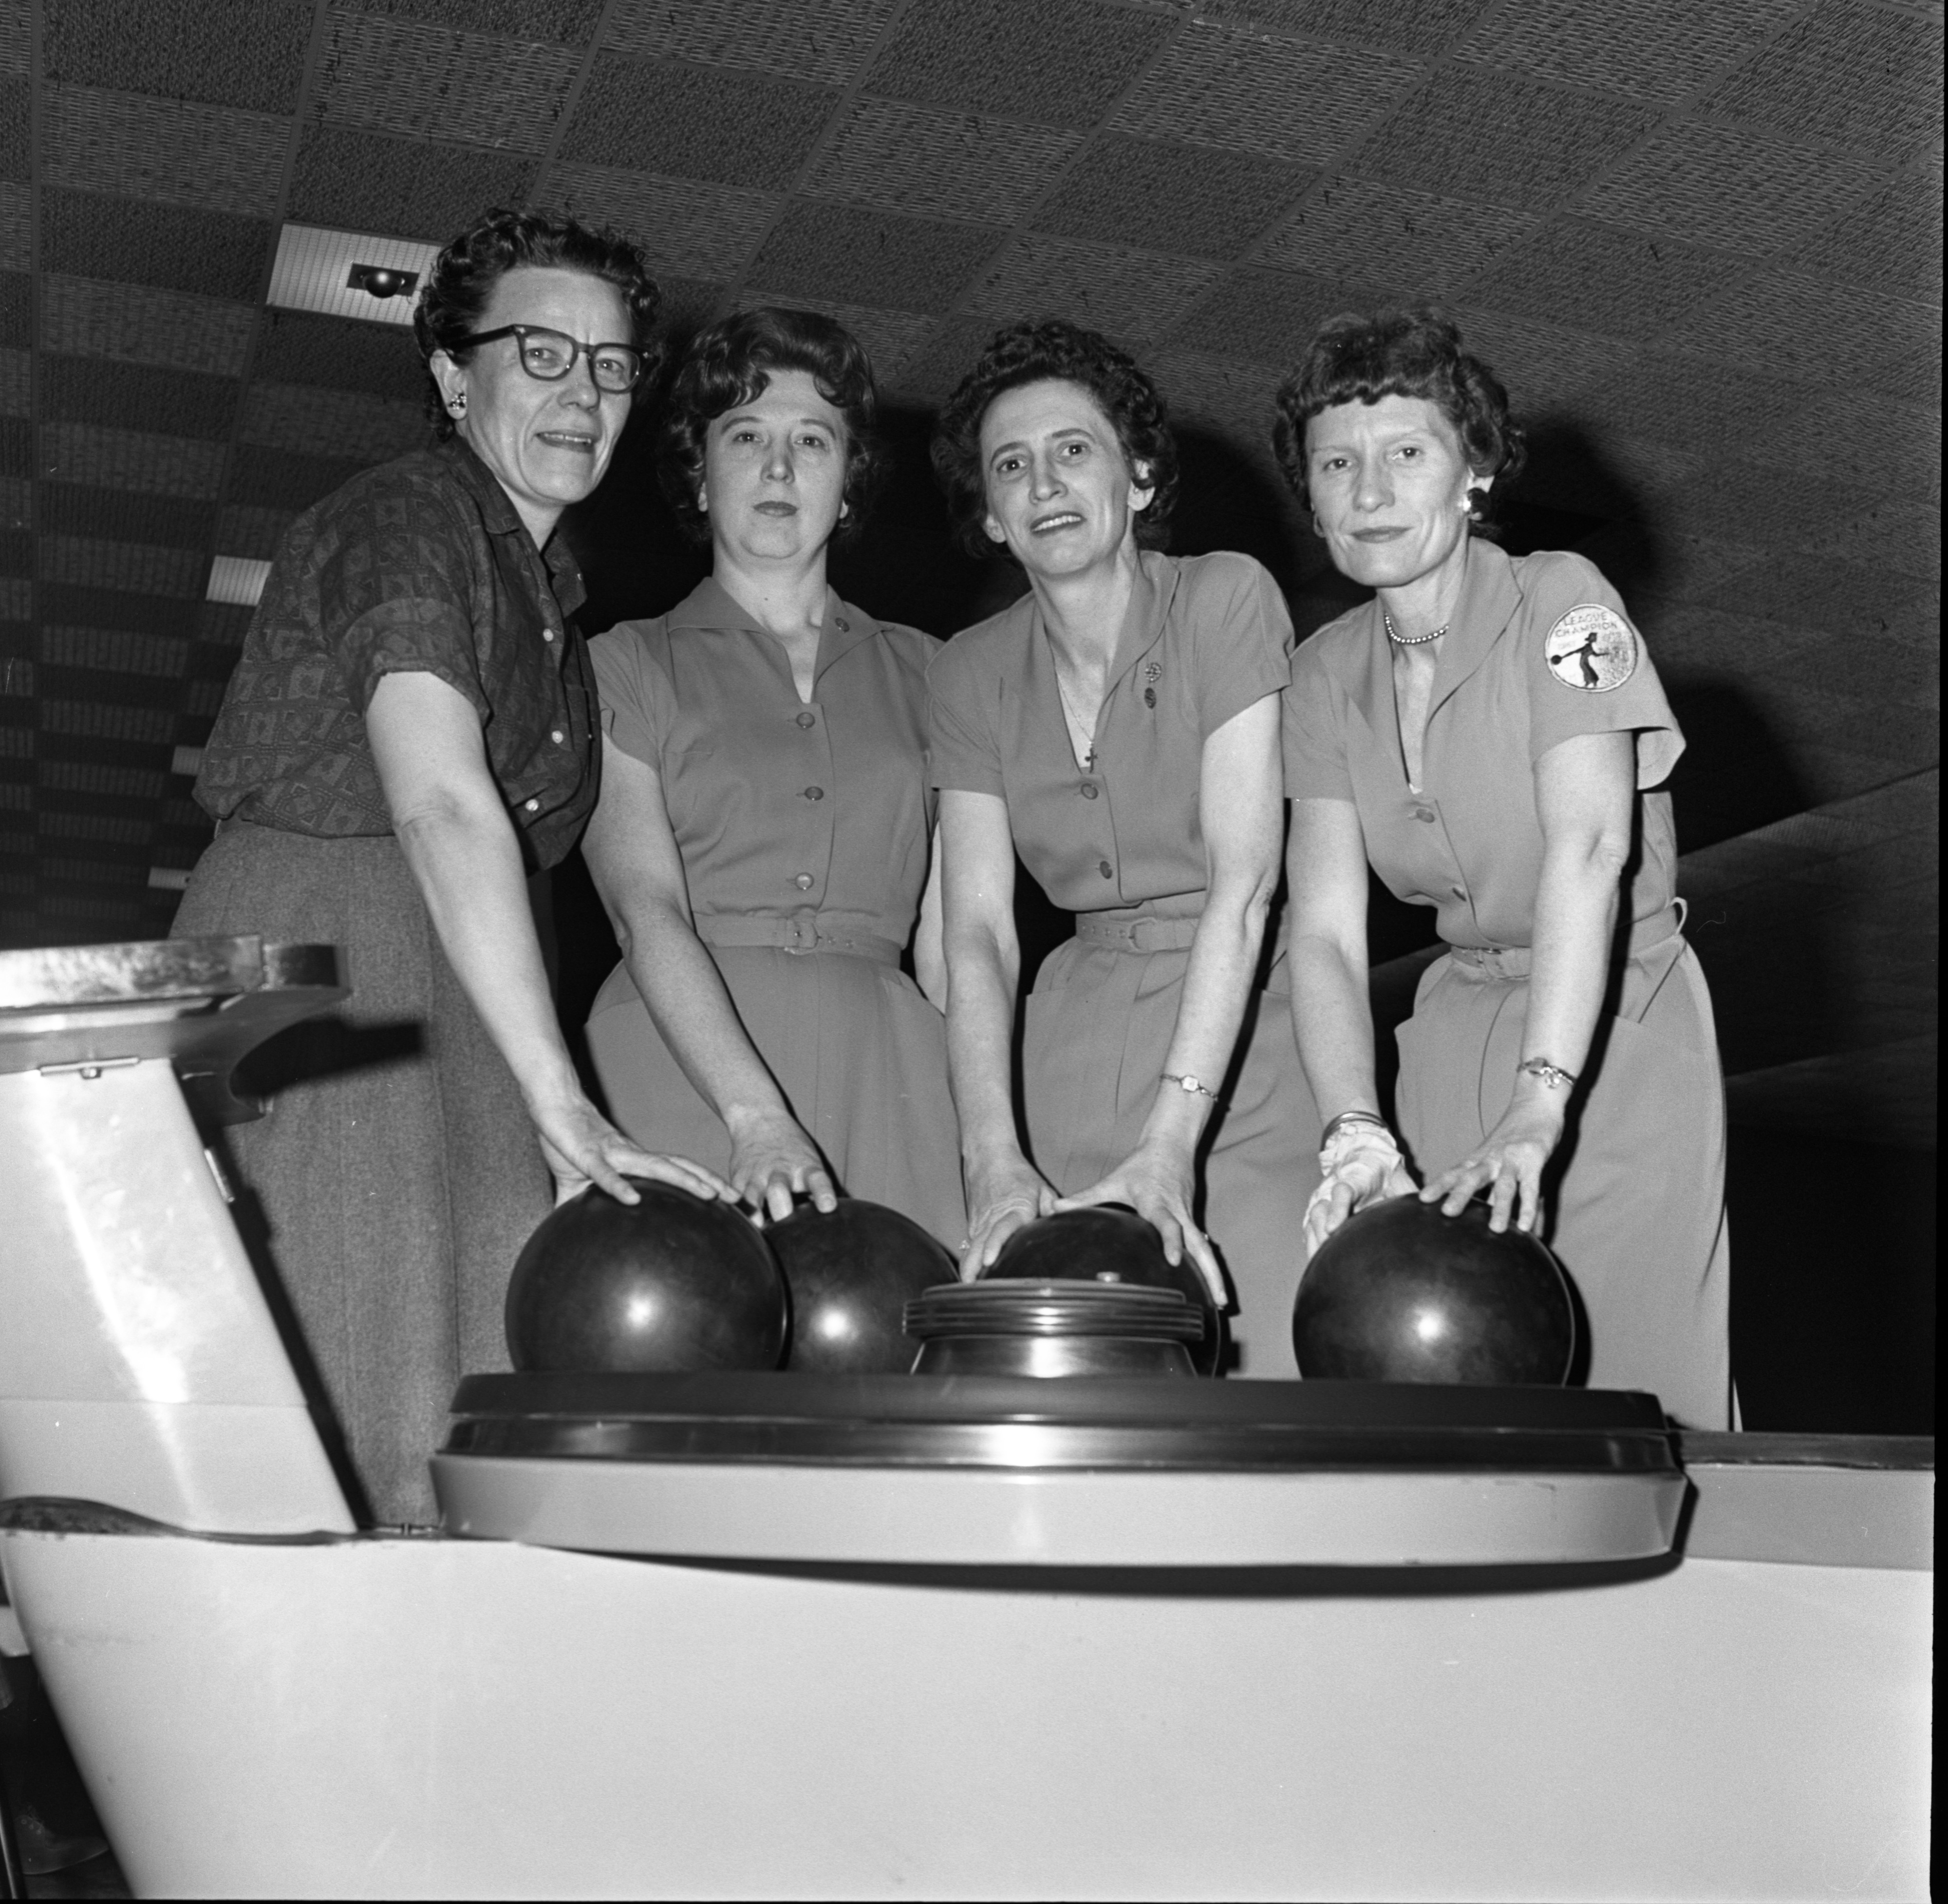 Richardson's Pharmacy Bowling Team Members Pose After Tournament, March 14, 1963 image